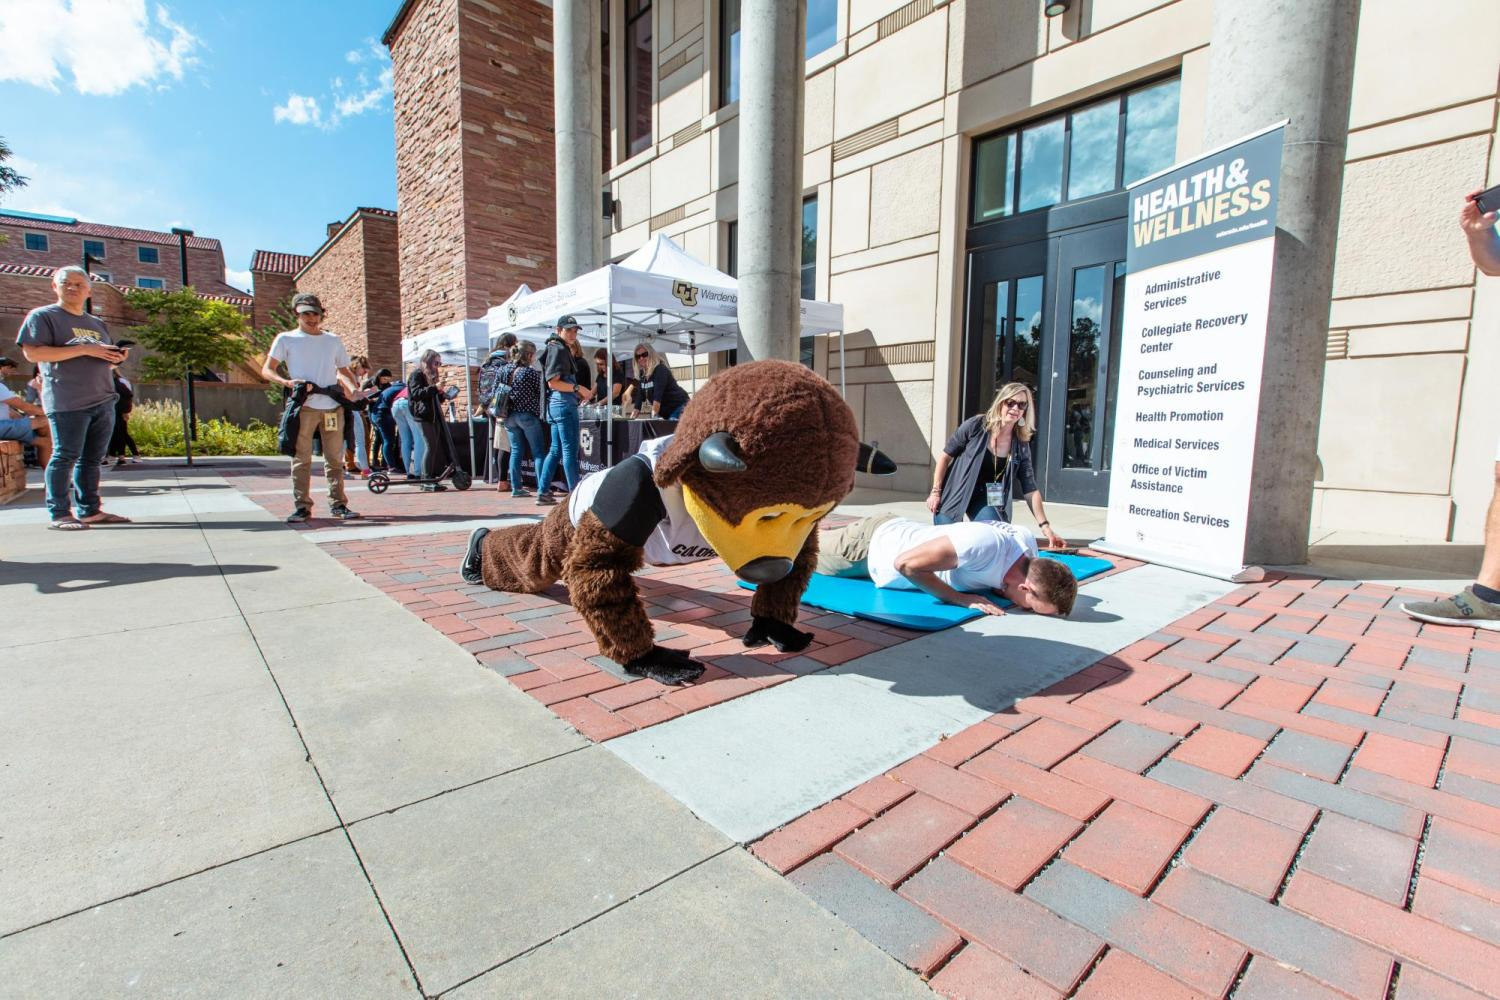 Chip doing pushups with a student